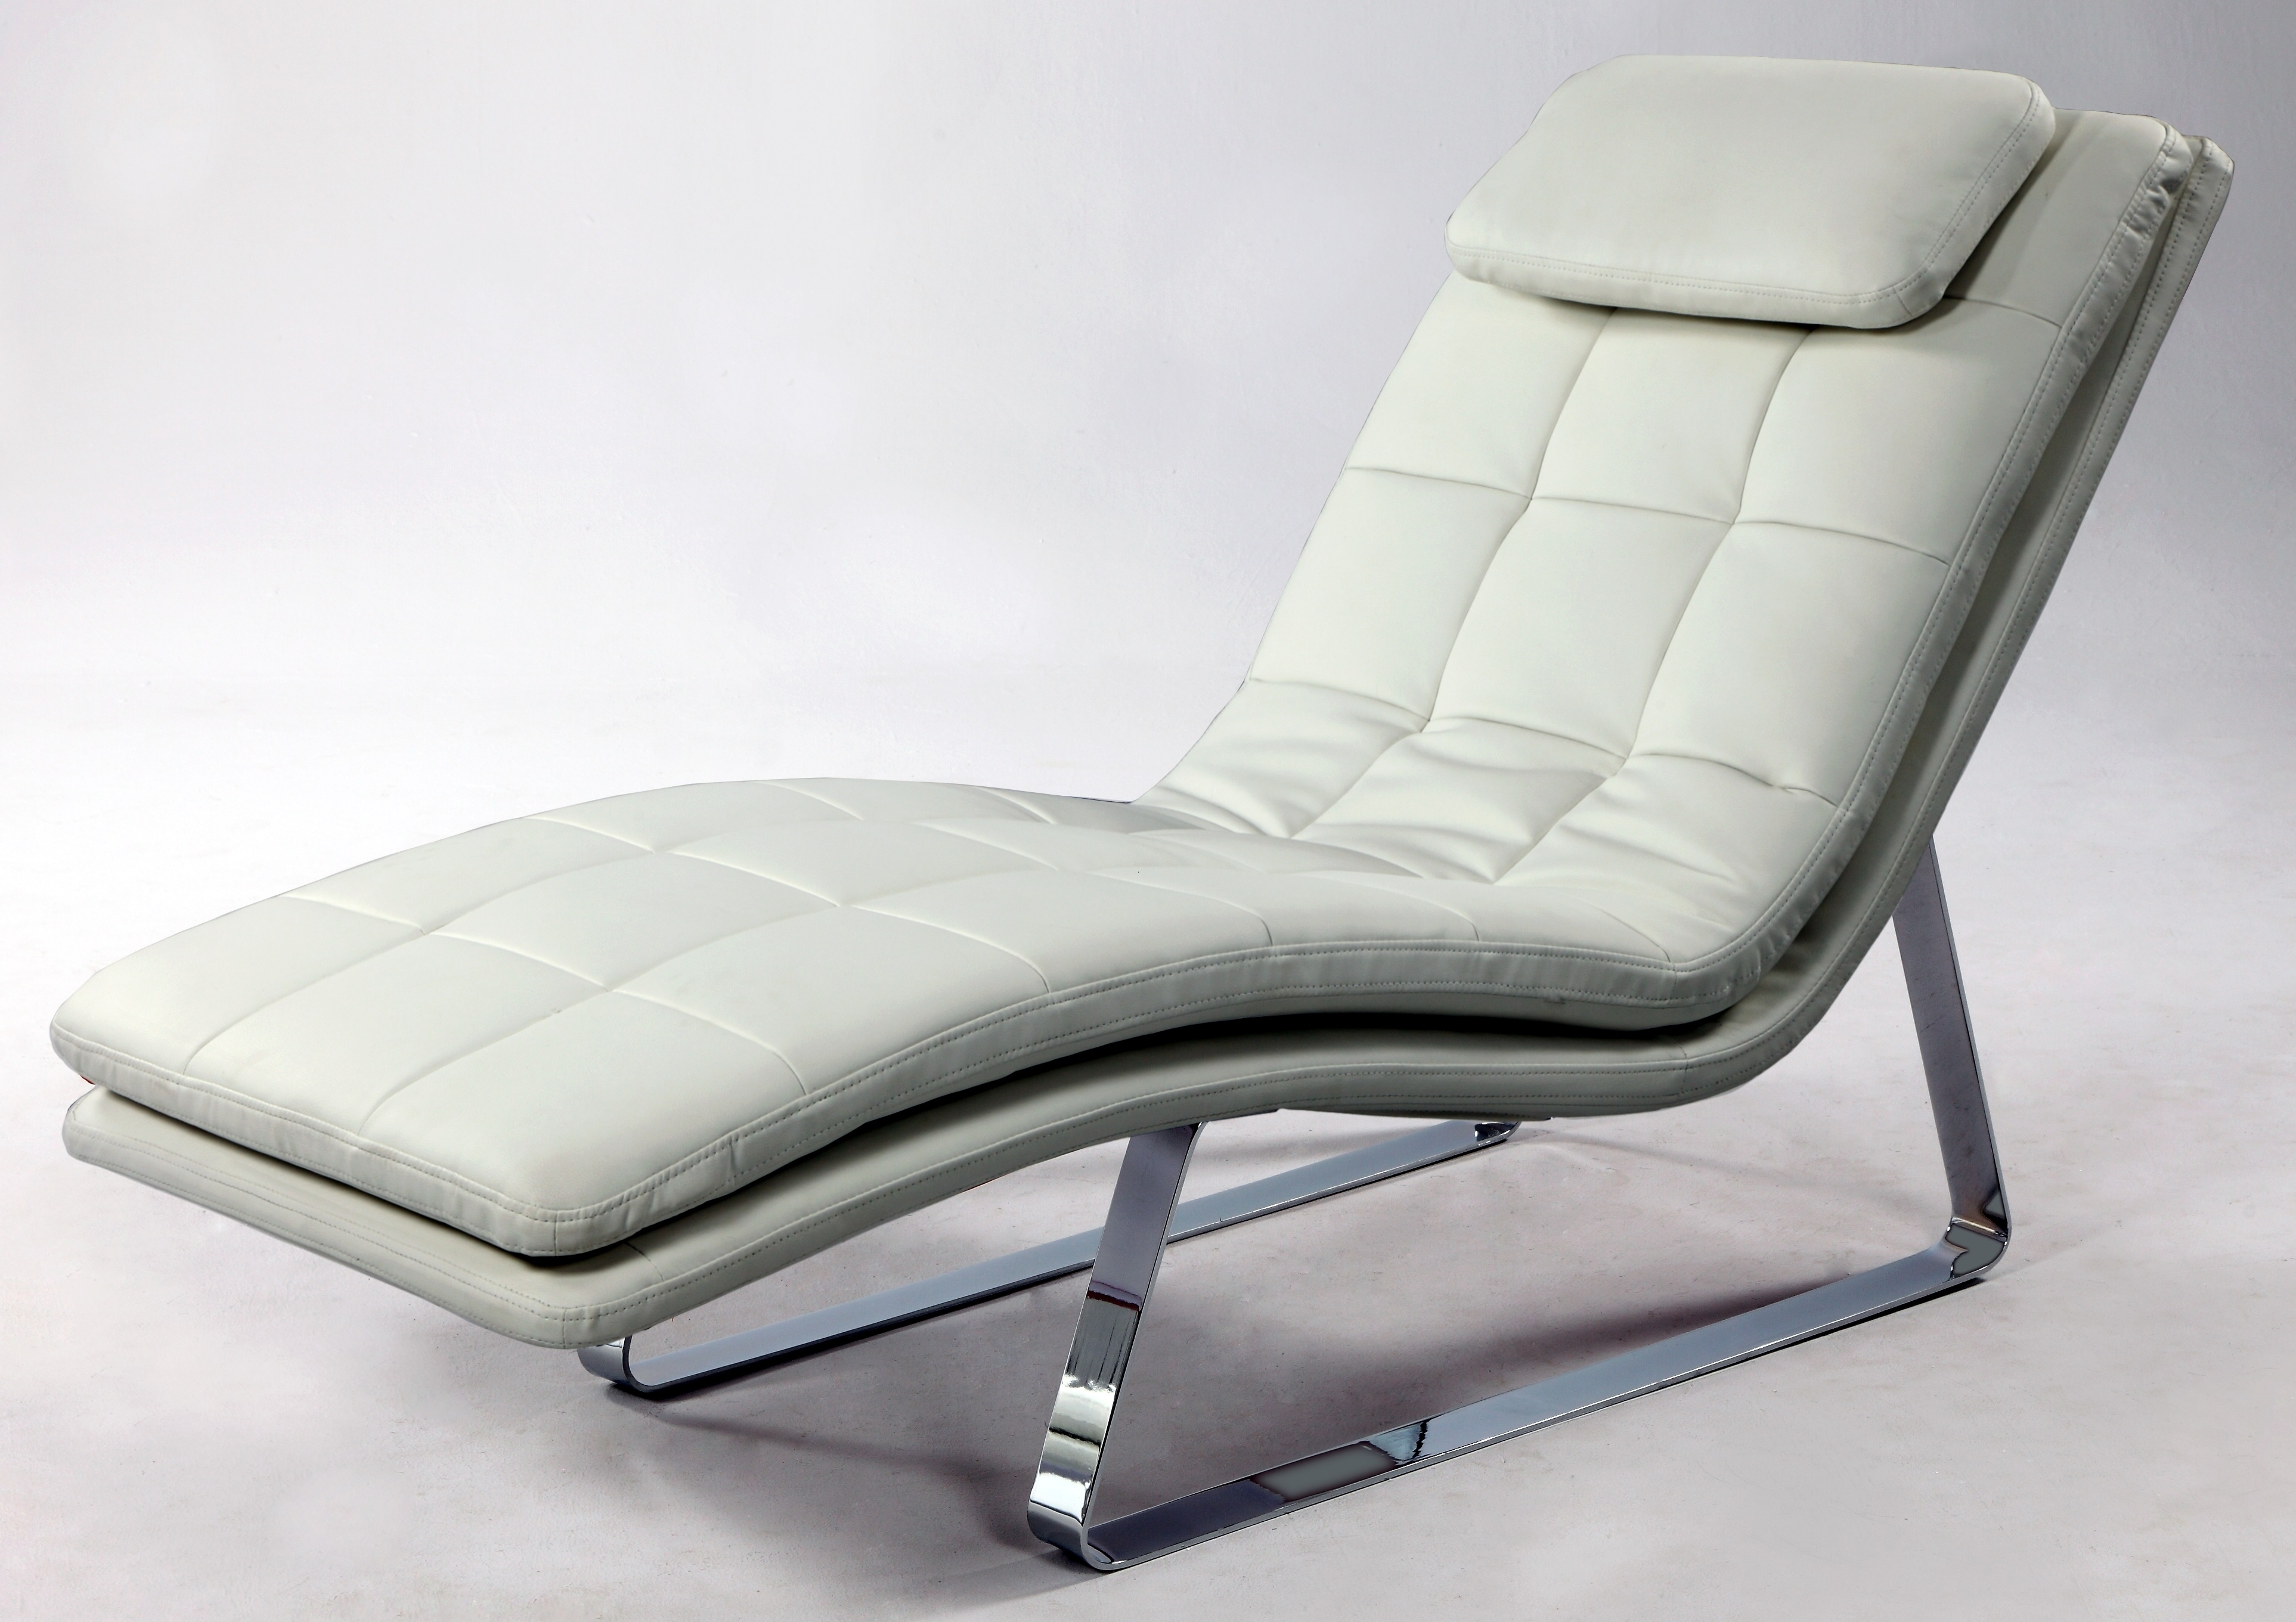 Full Bonded Leather Tufted Chaise Lounge With Chrome Legs New York Regarding Most Recently Released White Leather Chaise Lounges (View 4 of 15)